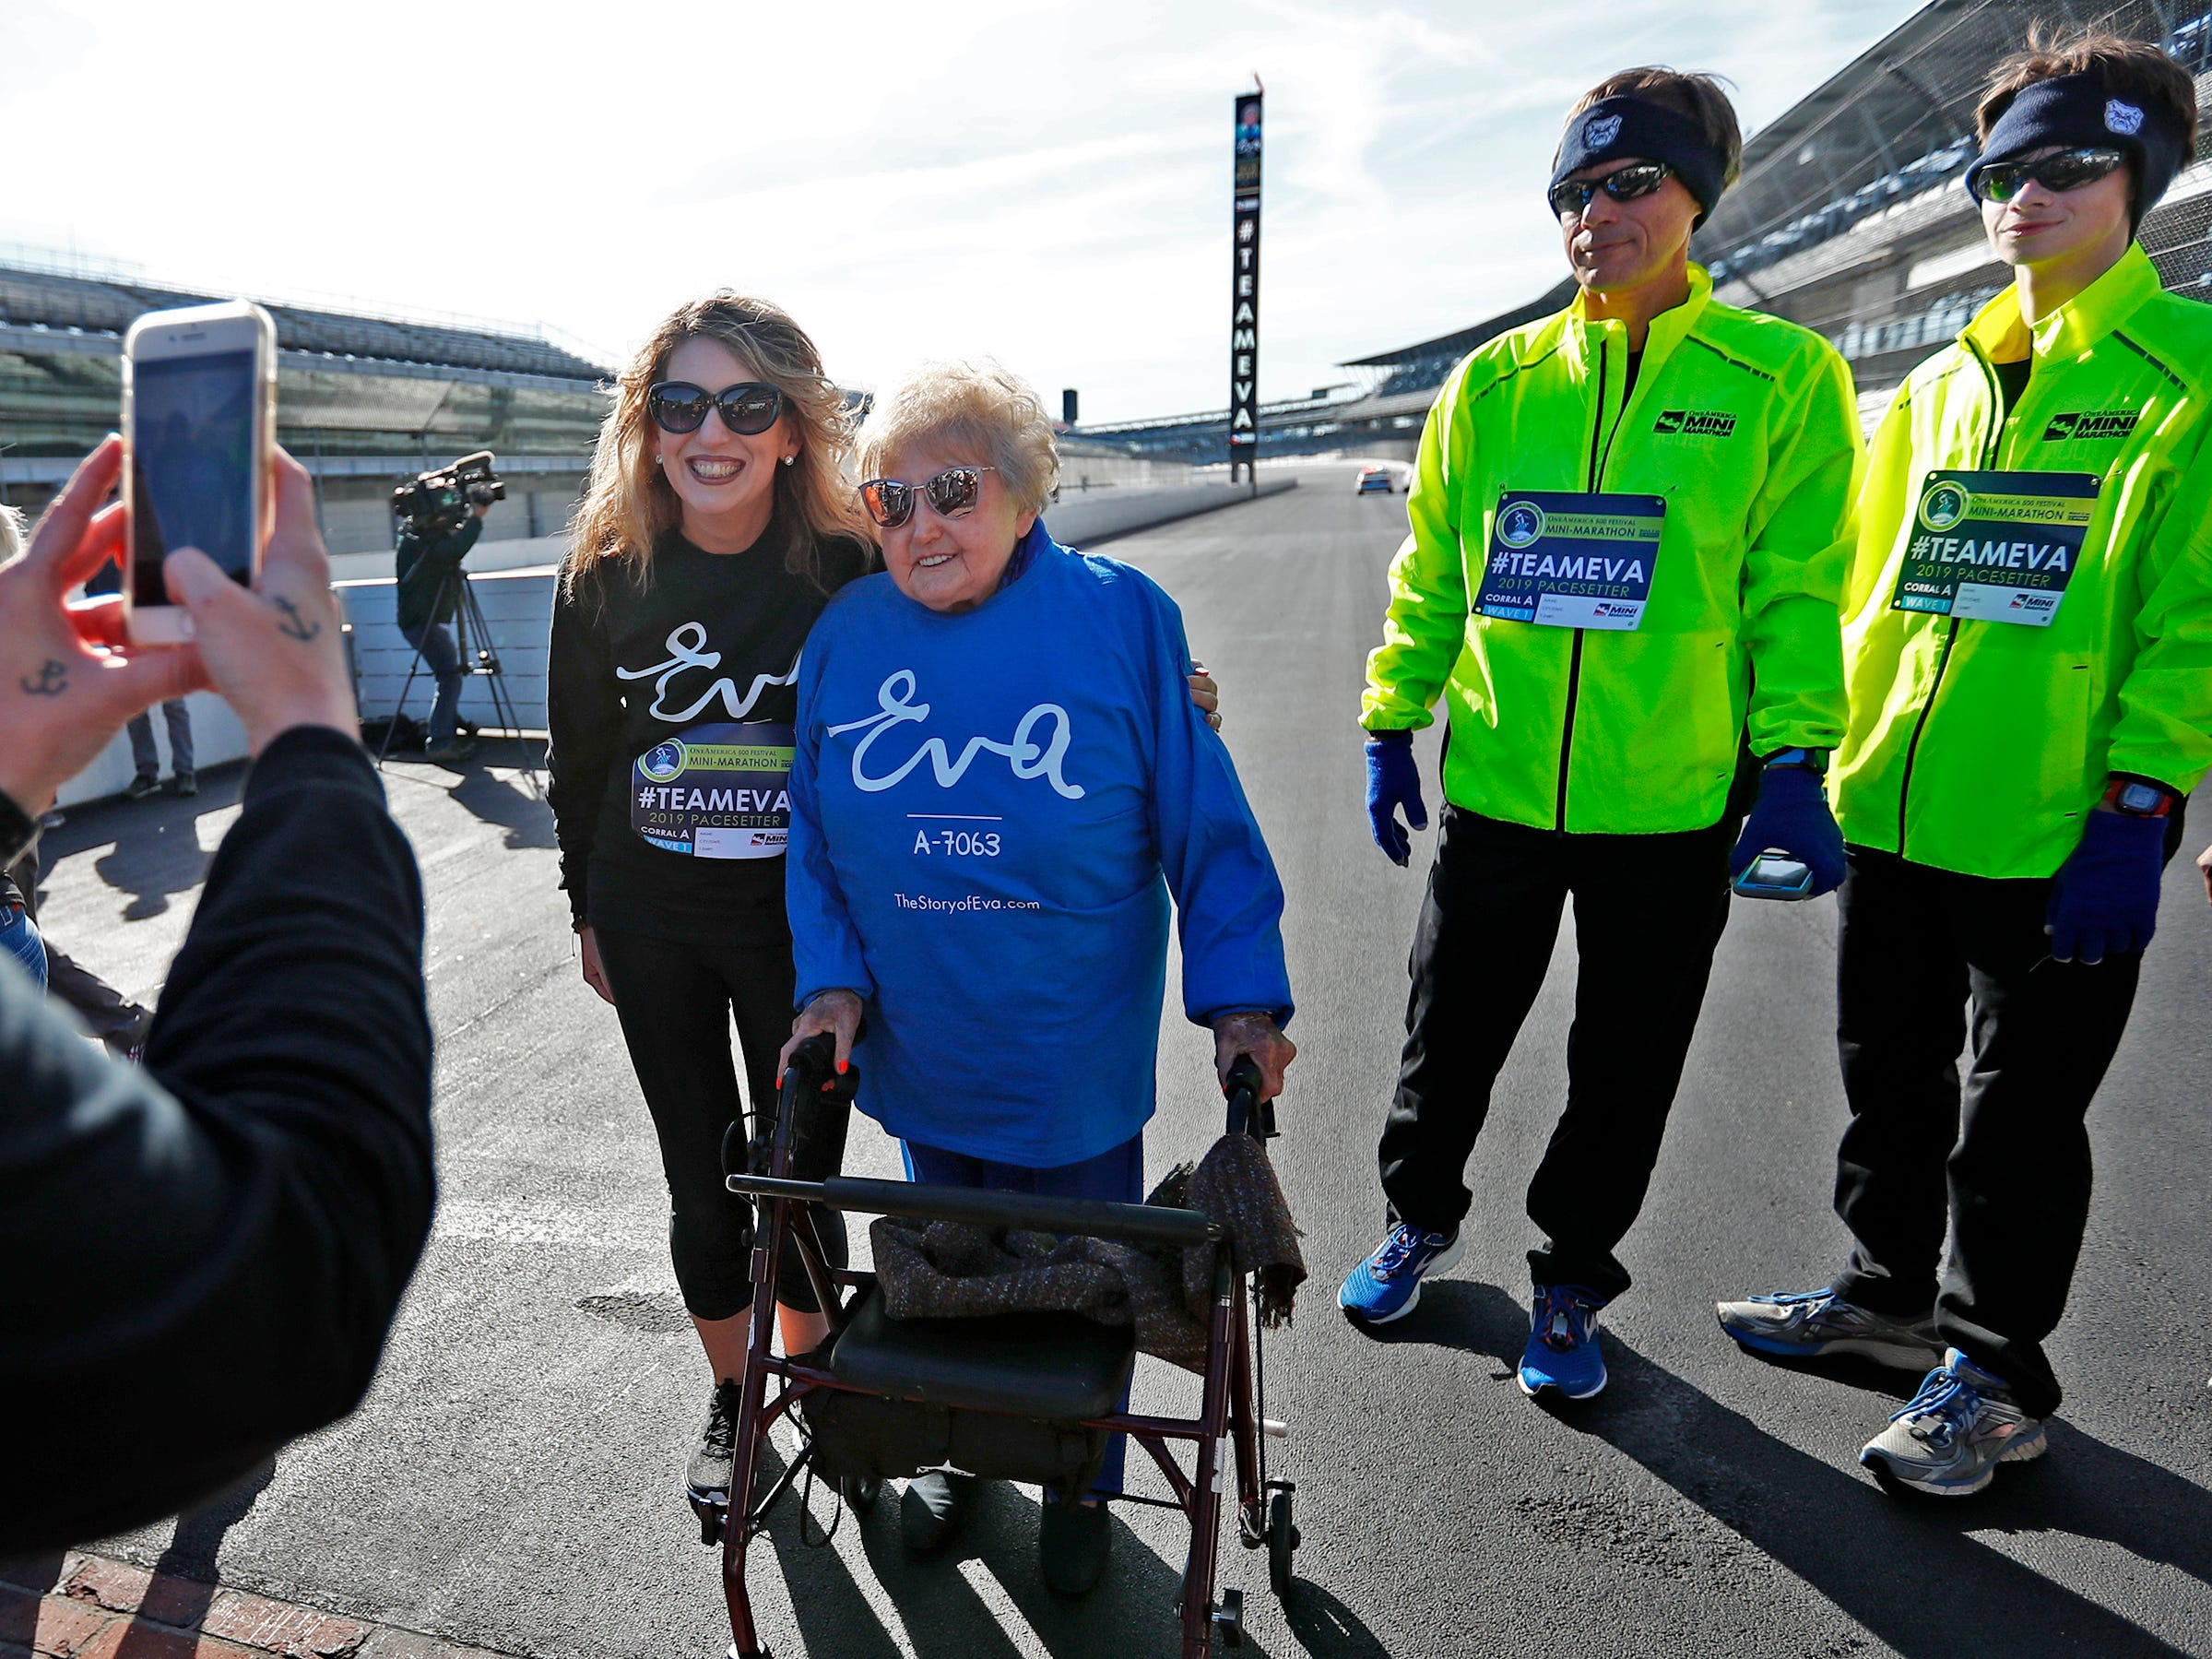 Holocaust survivor Eva Kor, center, joins others, including Epha Riche, at the Indianapolis Motor Speedway Yard of Bricks for photos, Wednesday, Oct. 24, 2018, during the pace-setting run for the 2019 OneAmerica 500 Festival Mini-Marathon.  The 500 Festival will donate $1 to the CANDLES Holocaust Museum in Terre Haute for every mini-marathon participant who finishes the 2019 race in a better time than Team Eva.  Kor ran the very last of the relay race.